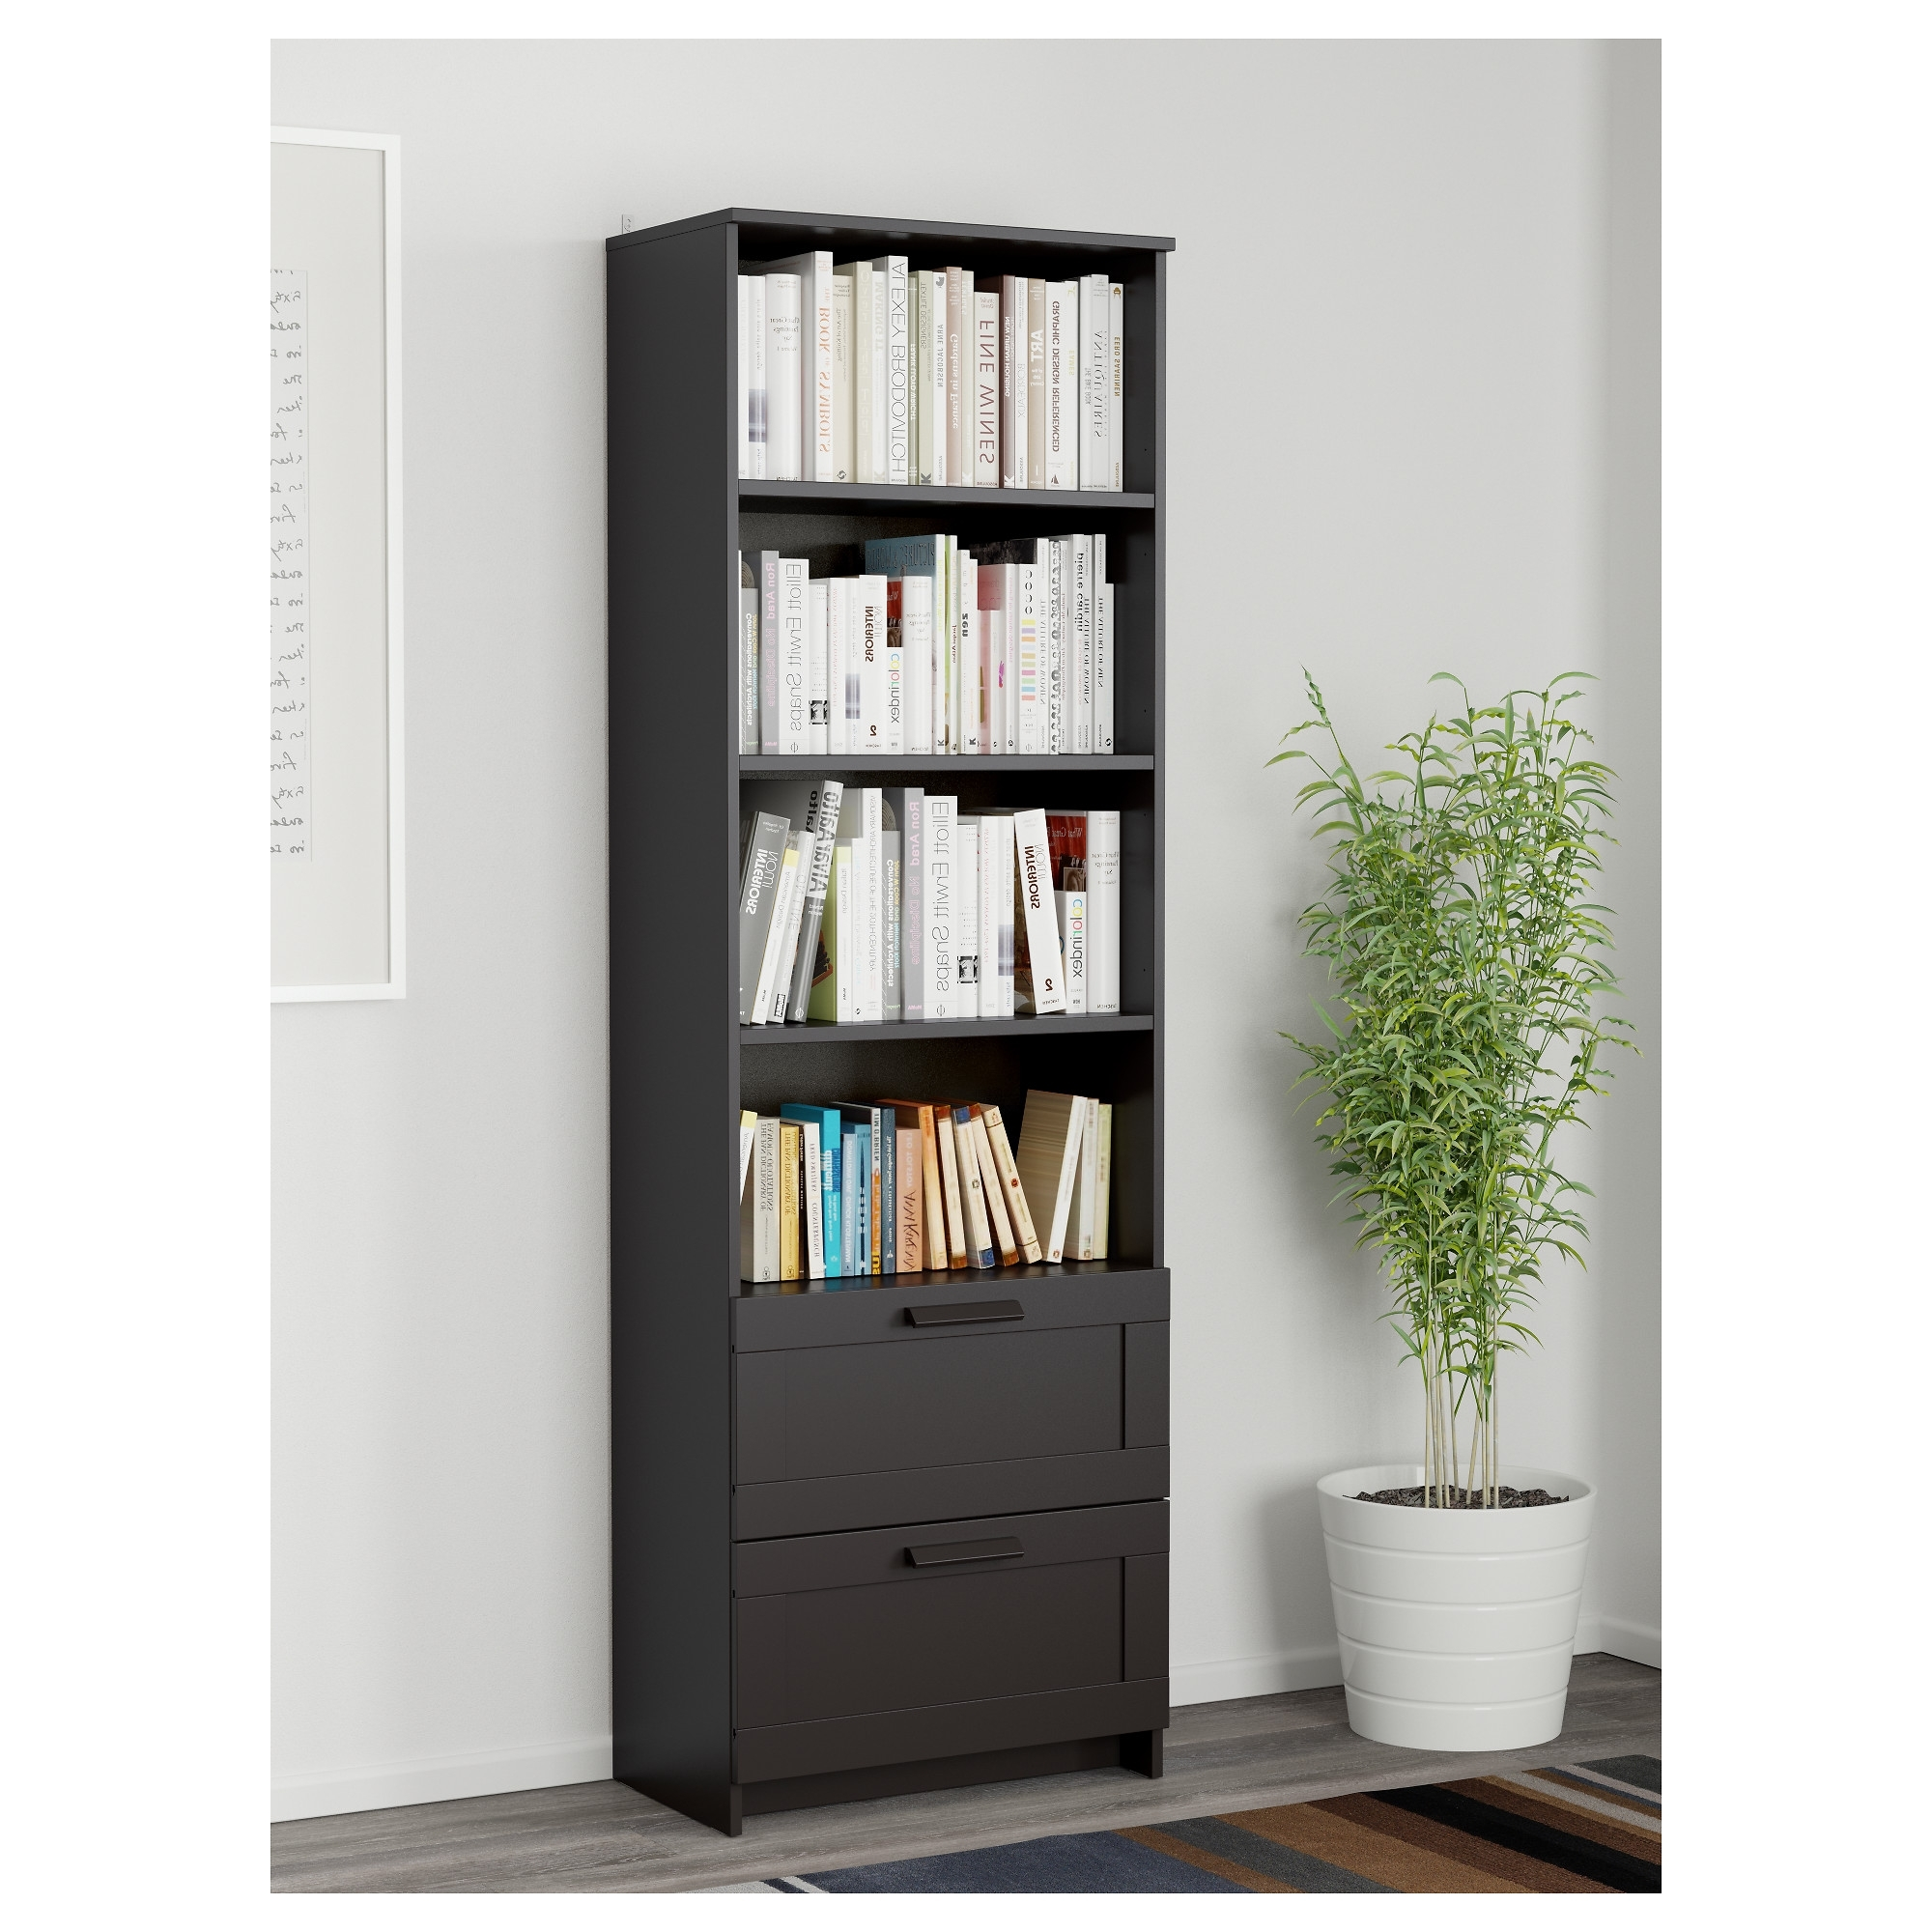 Black Bookcases With Regard To Most Up To Date Brimnes Bookcase – Black – Ikea (View 15 of 15)